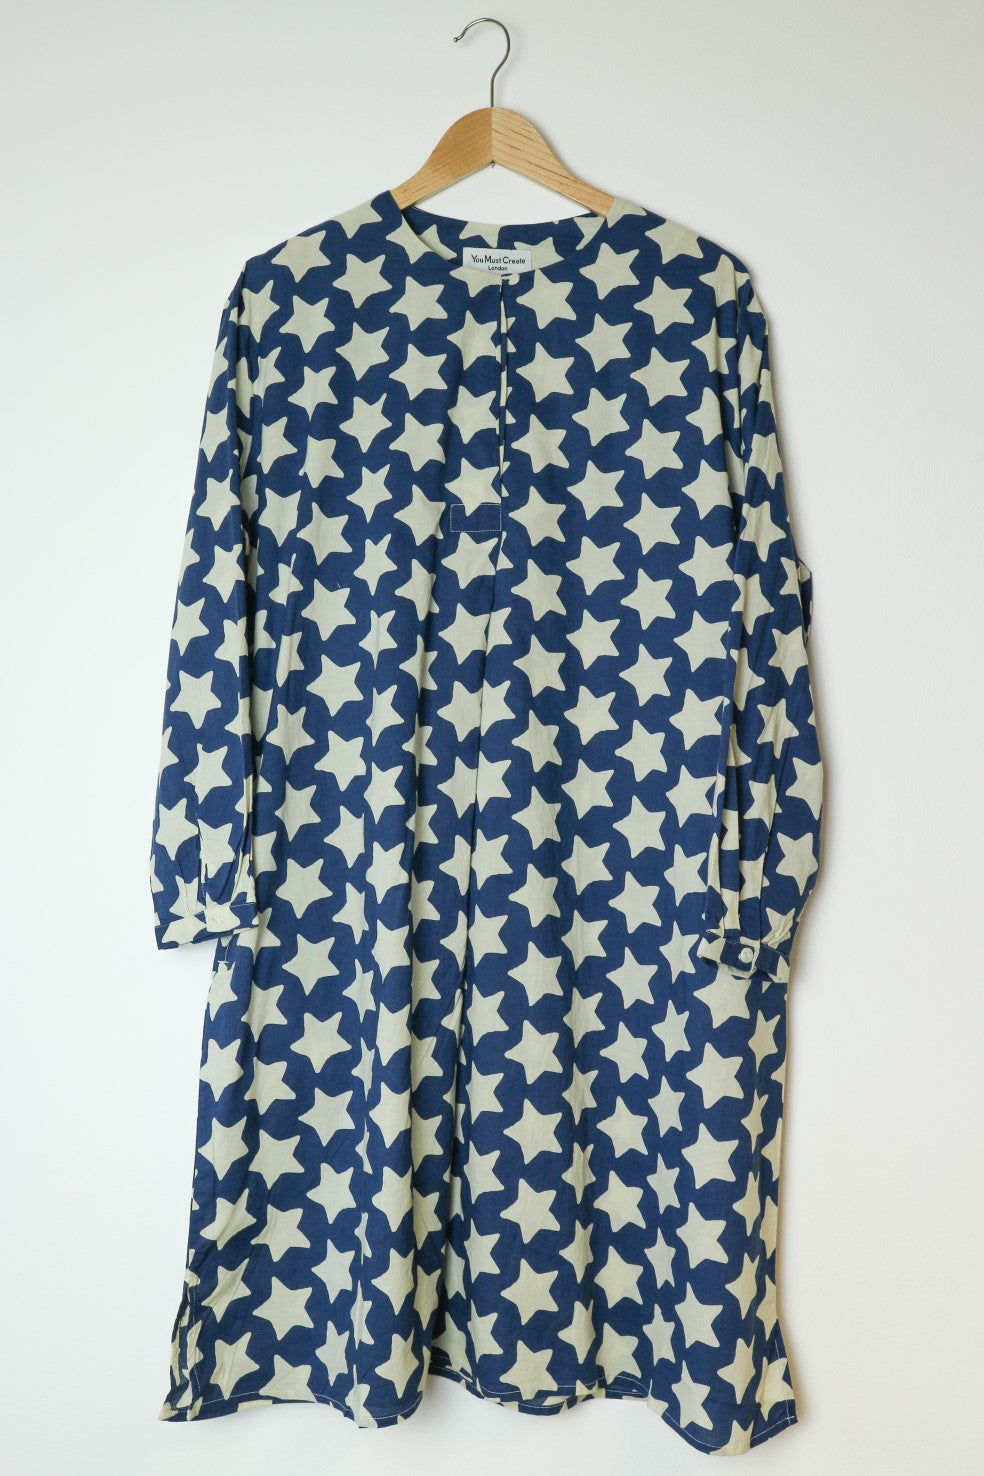 Niama Dress in Blue with Star Print